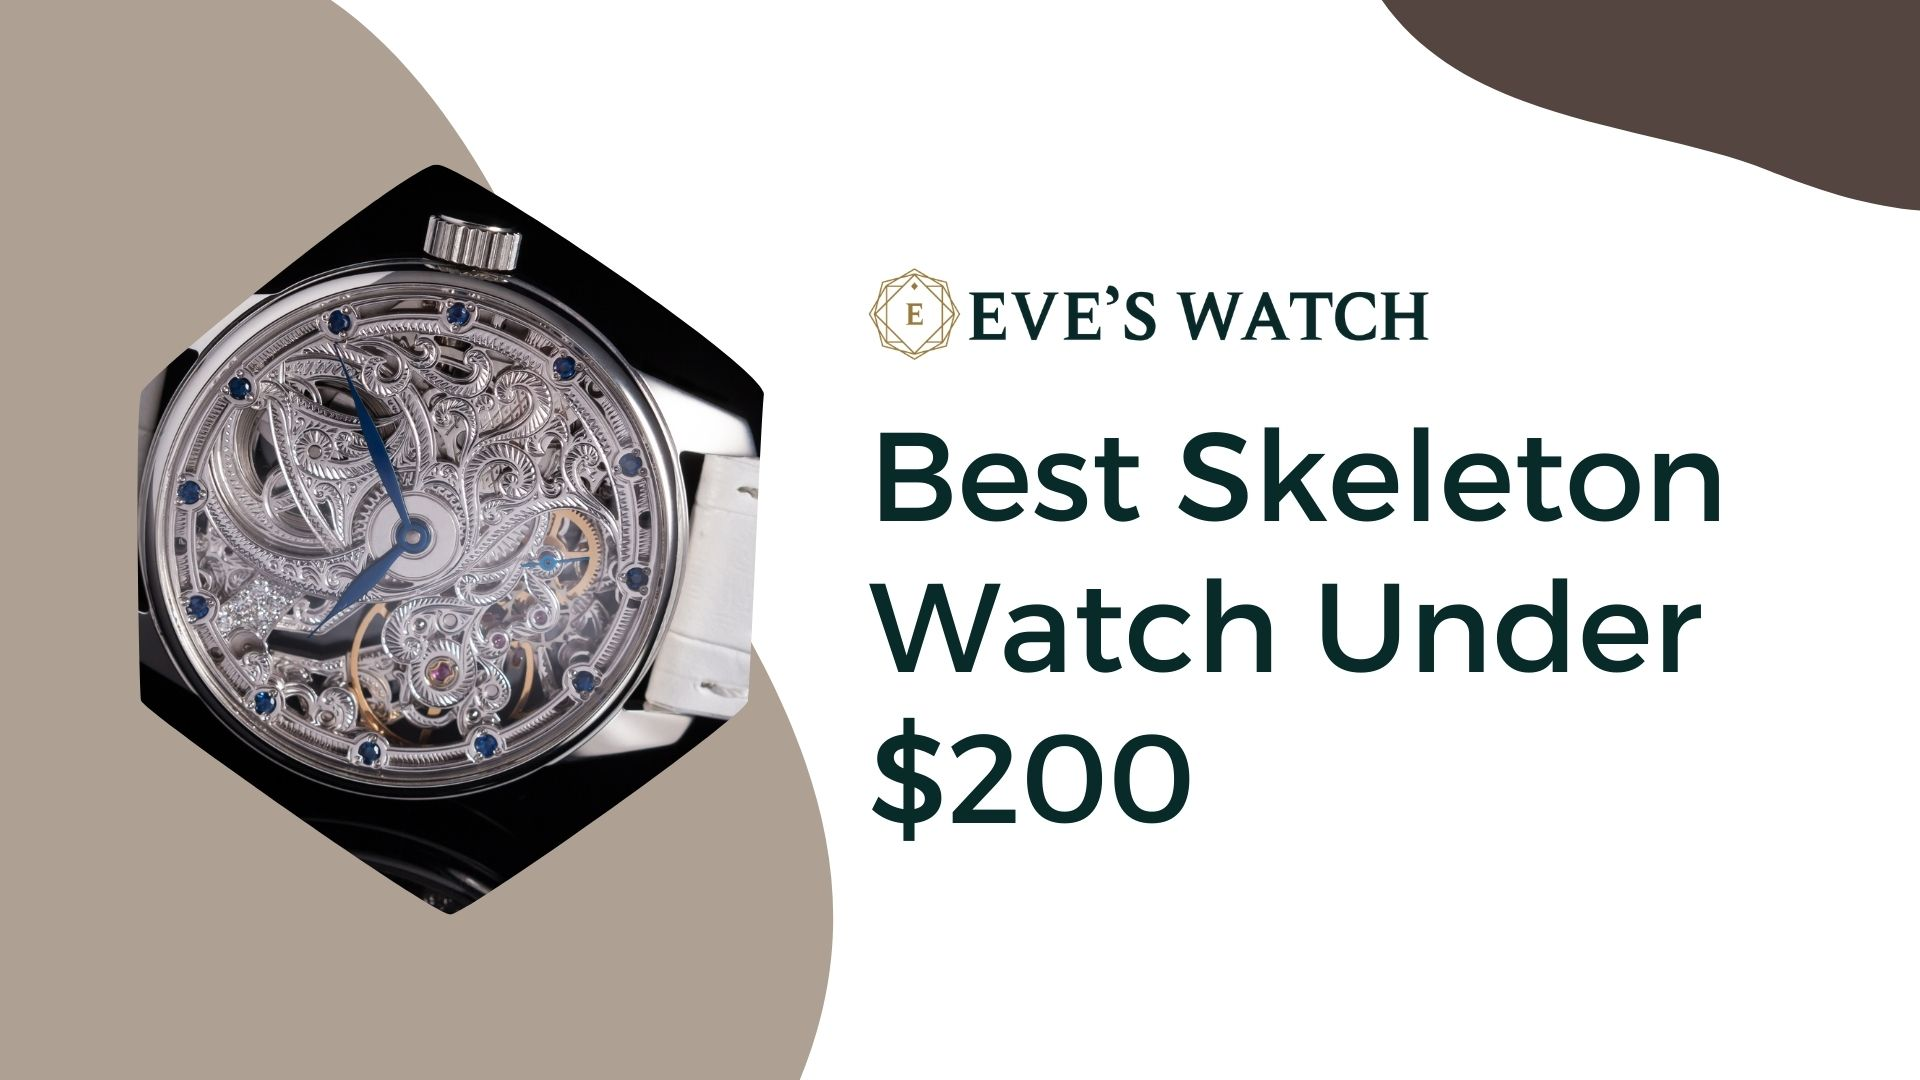 Best Skeleton Watch Under $200